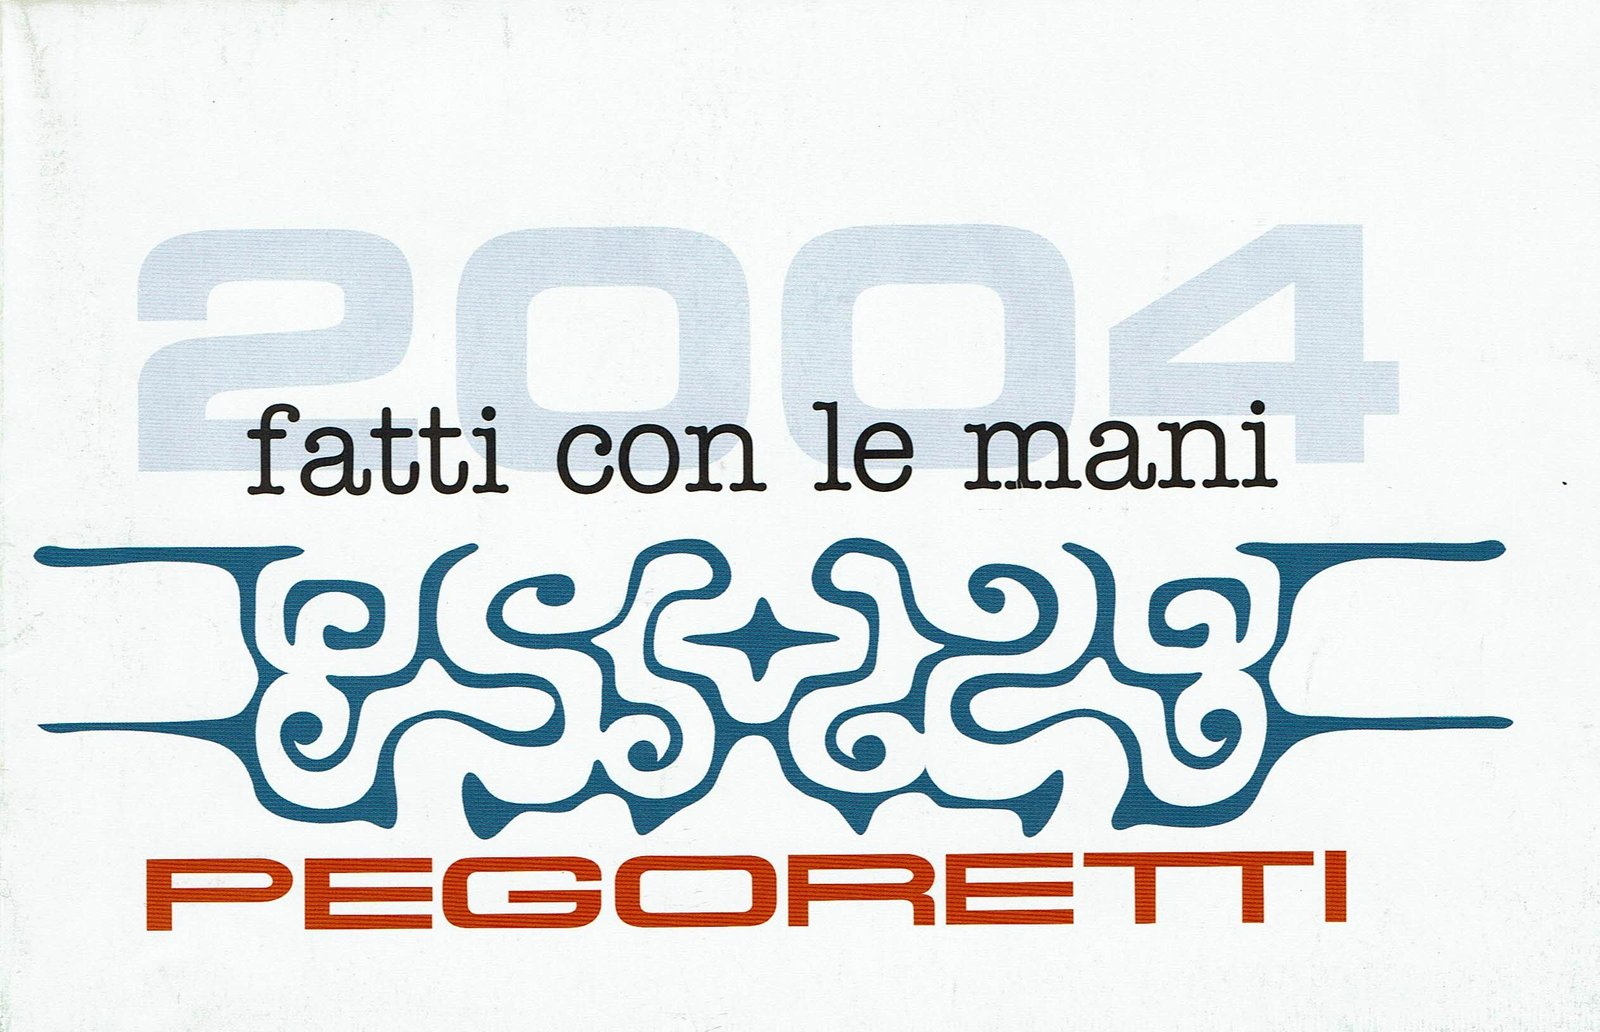 Link to scanned image of the 2004 Pegoretti catalog